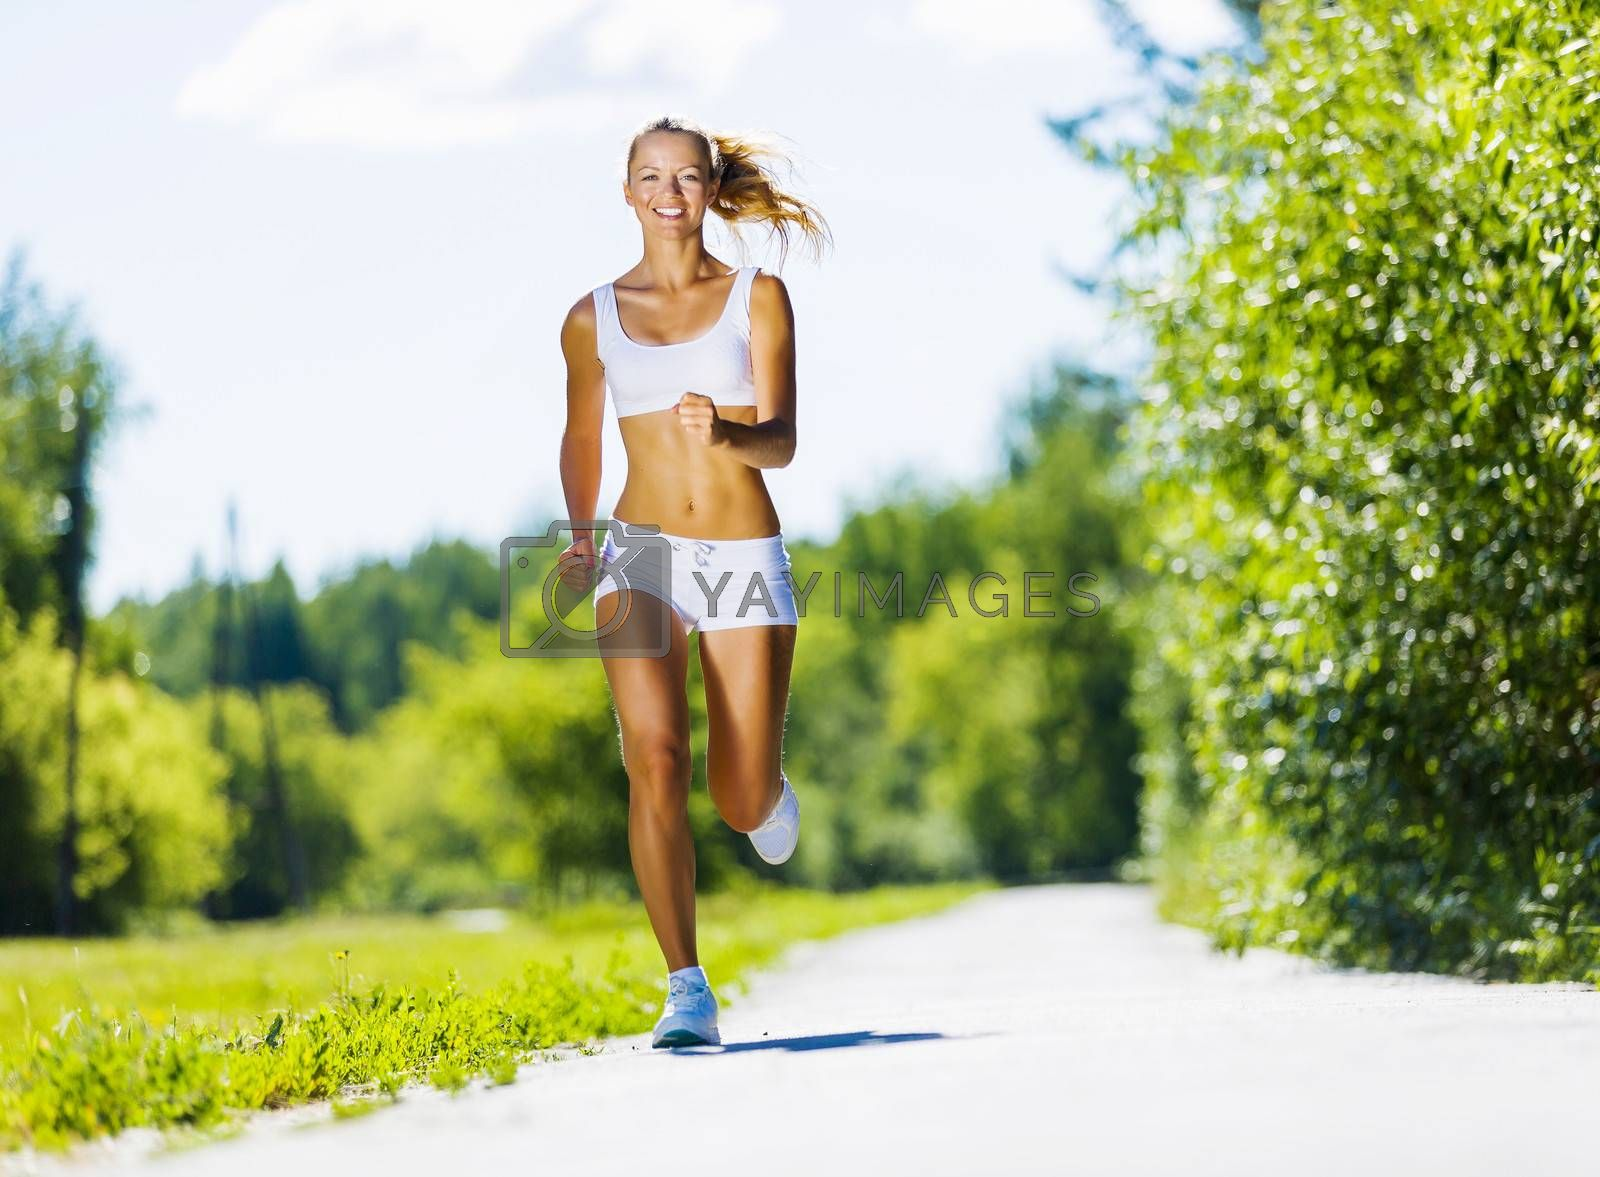 Royalty free image of Sport girl by Sergey Nivens